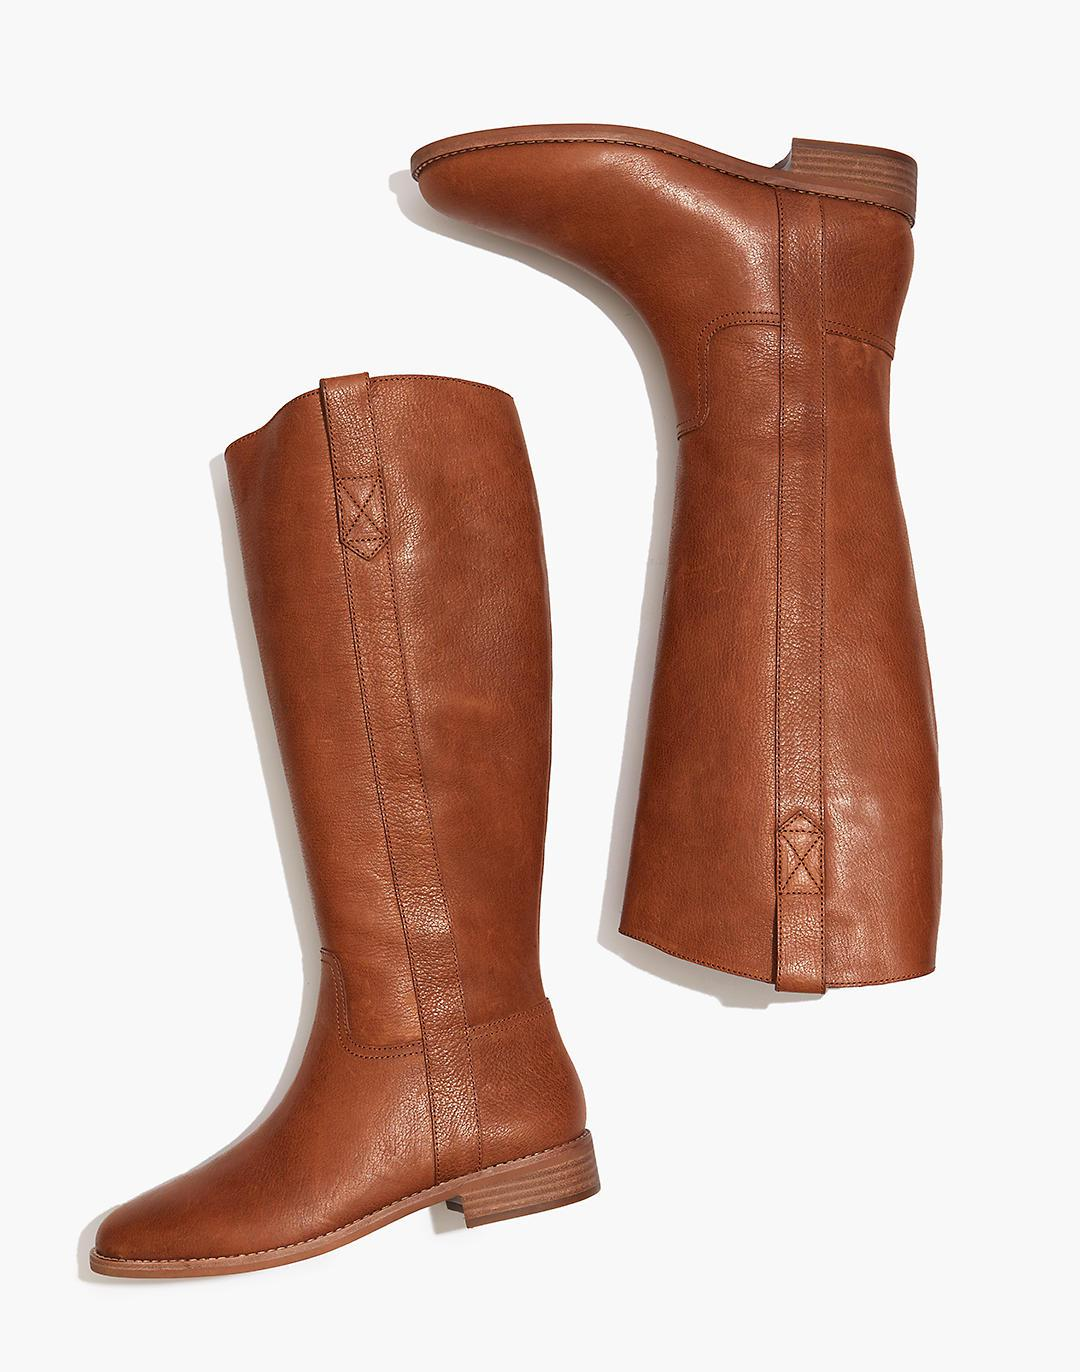 The Winslow Knee-High Boot with Extended Calf